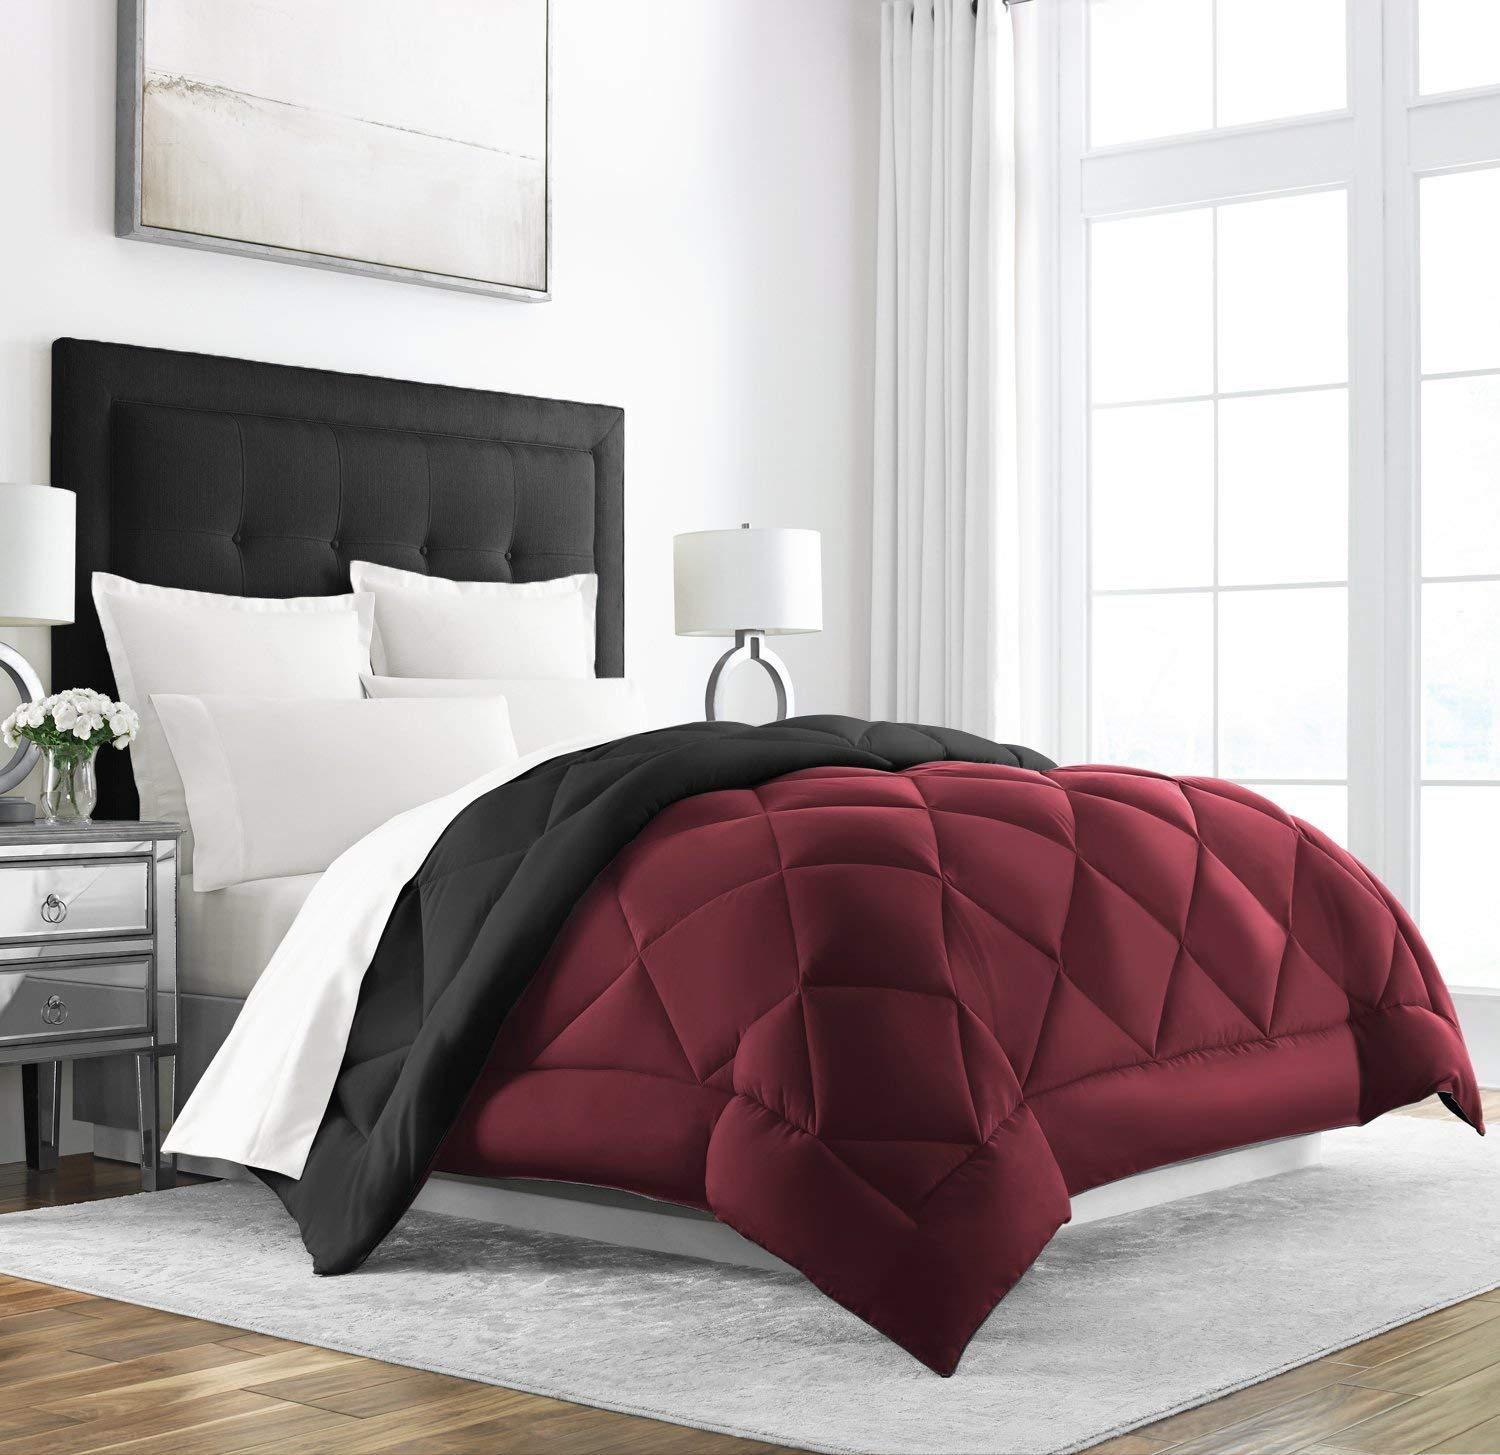 Best Alternative Down Comforters